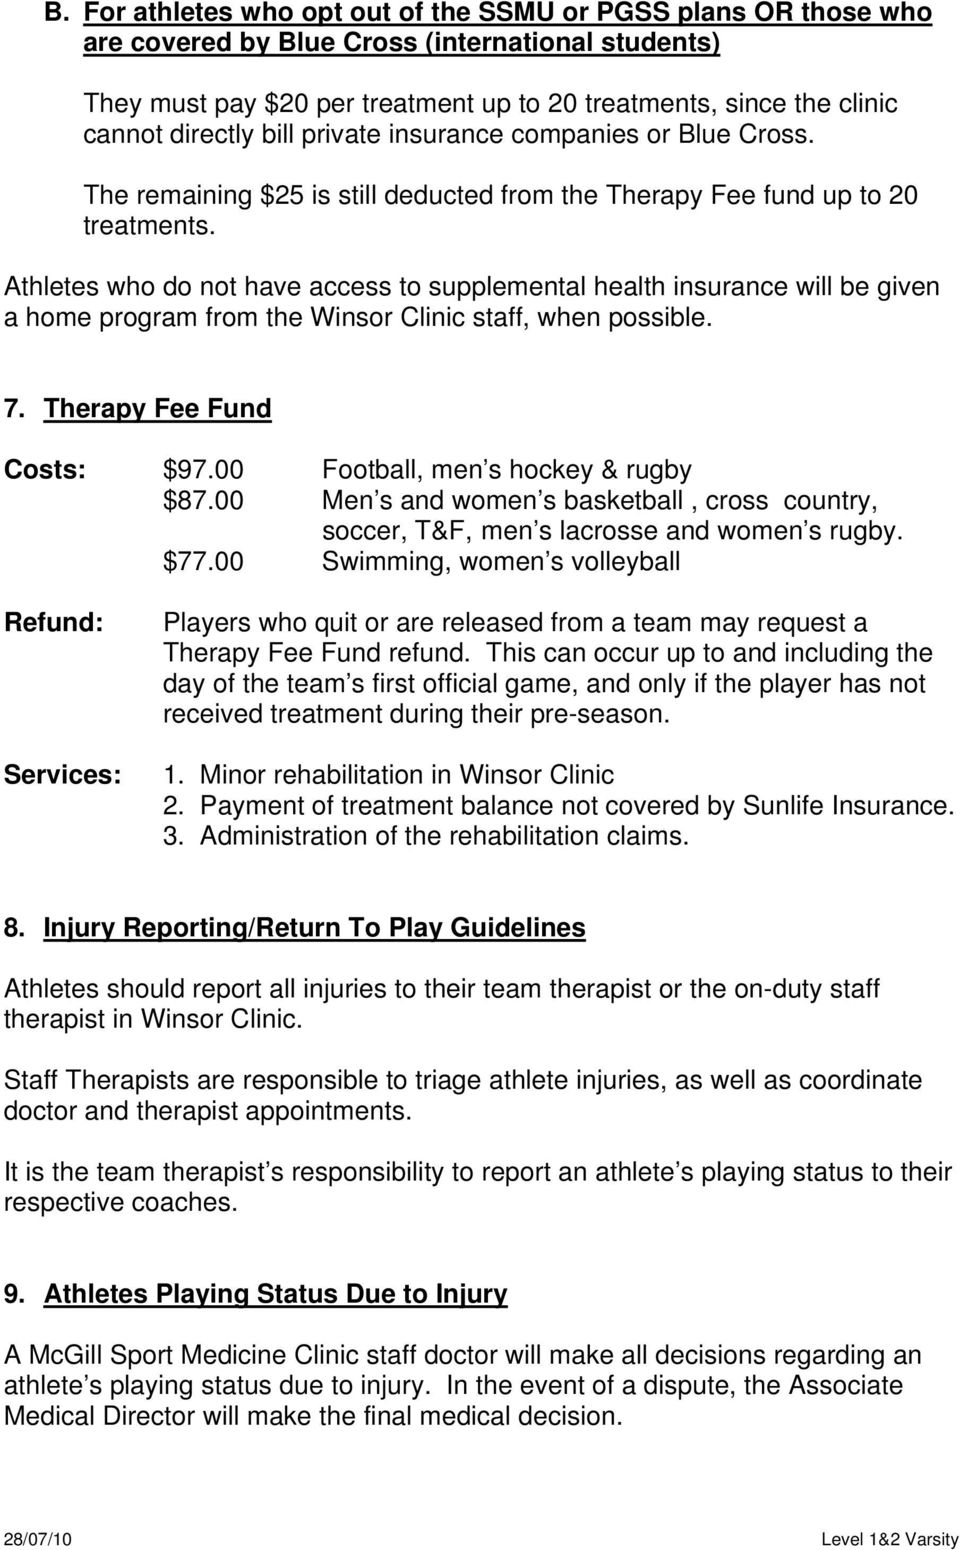 Athletes who do not have access to supplemental health insurance will be given a home program from the Winsor Clinic staff, when possible. 7. Therapy Fee Fund Costs: $97.